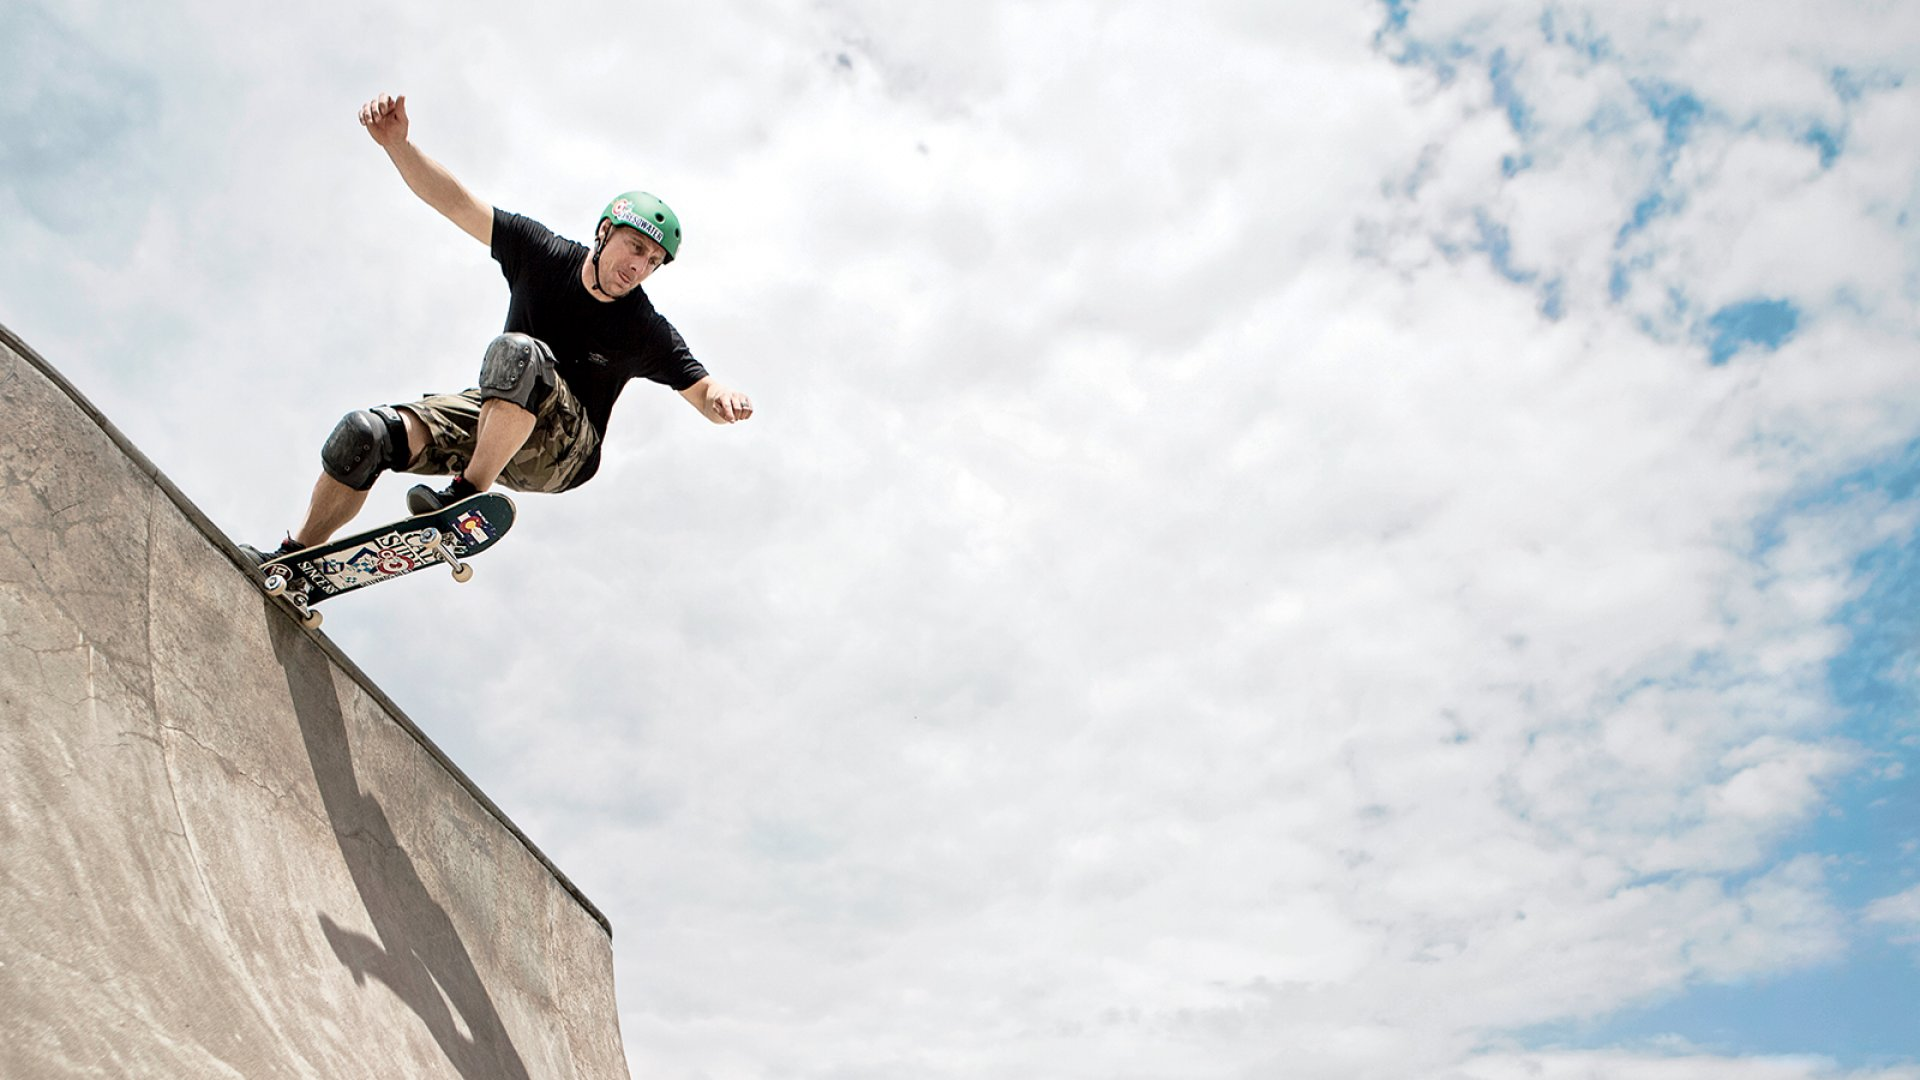 Resqwater co-founder Troy Michels, at a skate park near his home in Minneapolis.